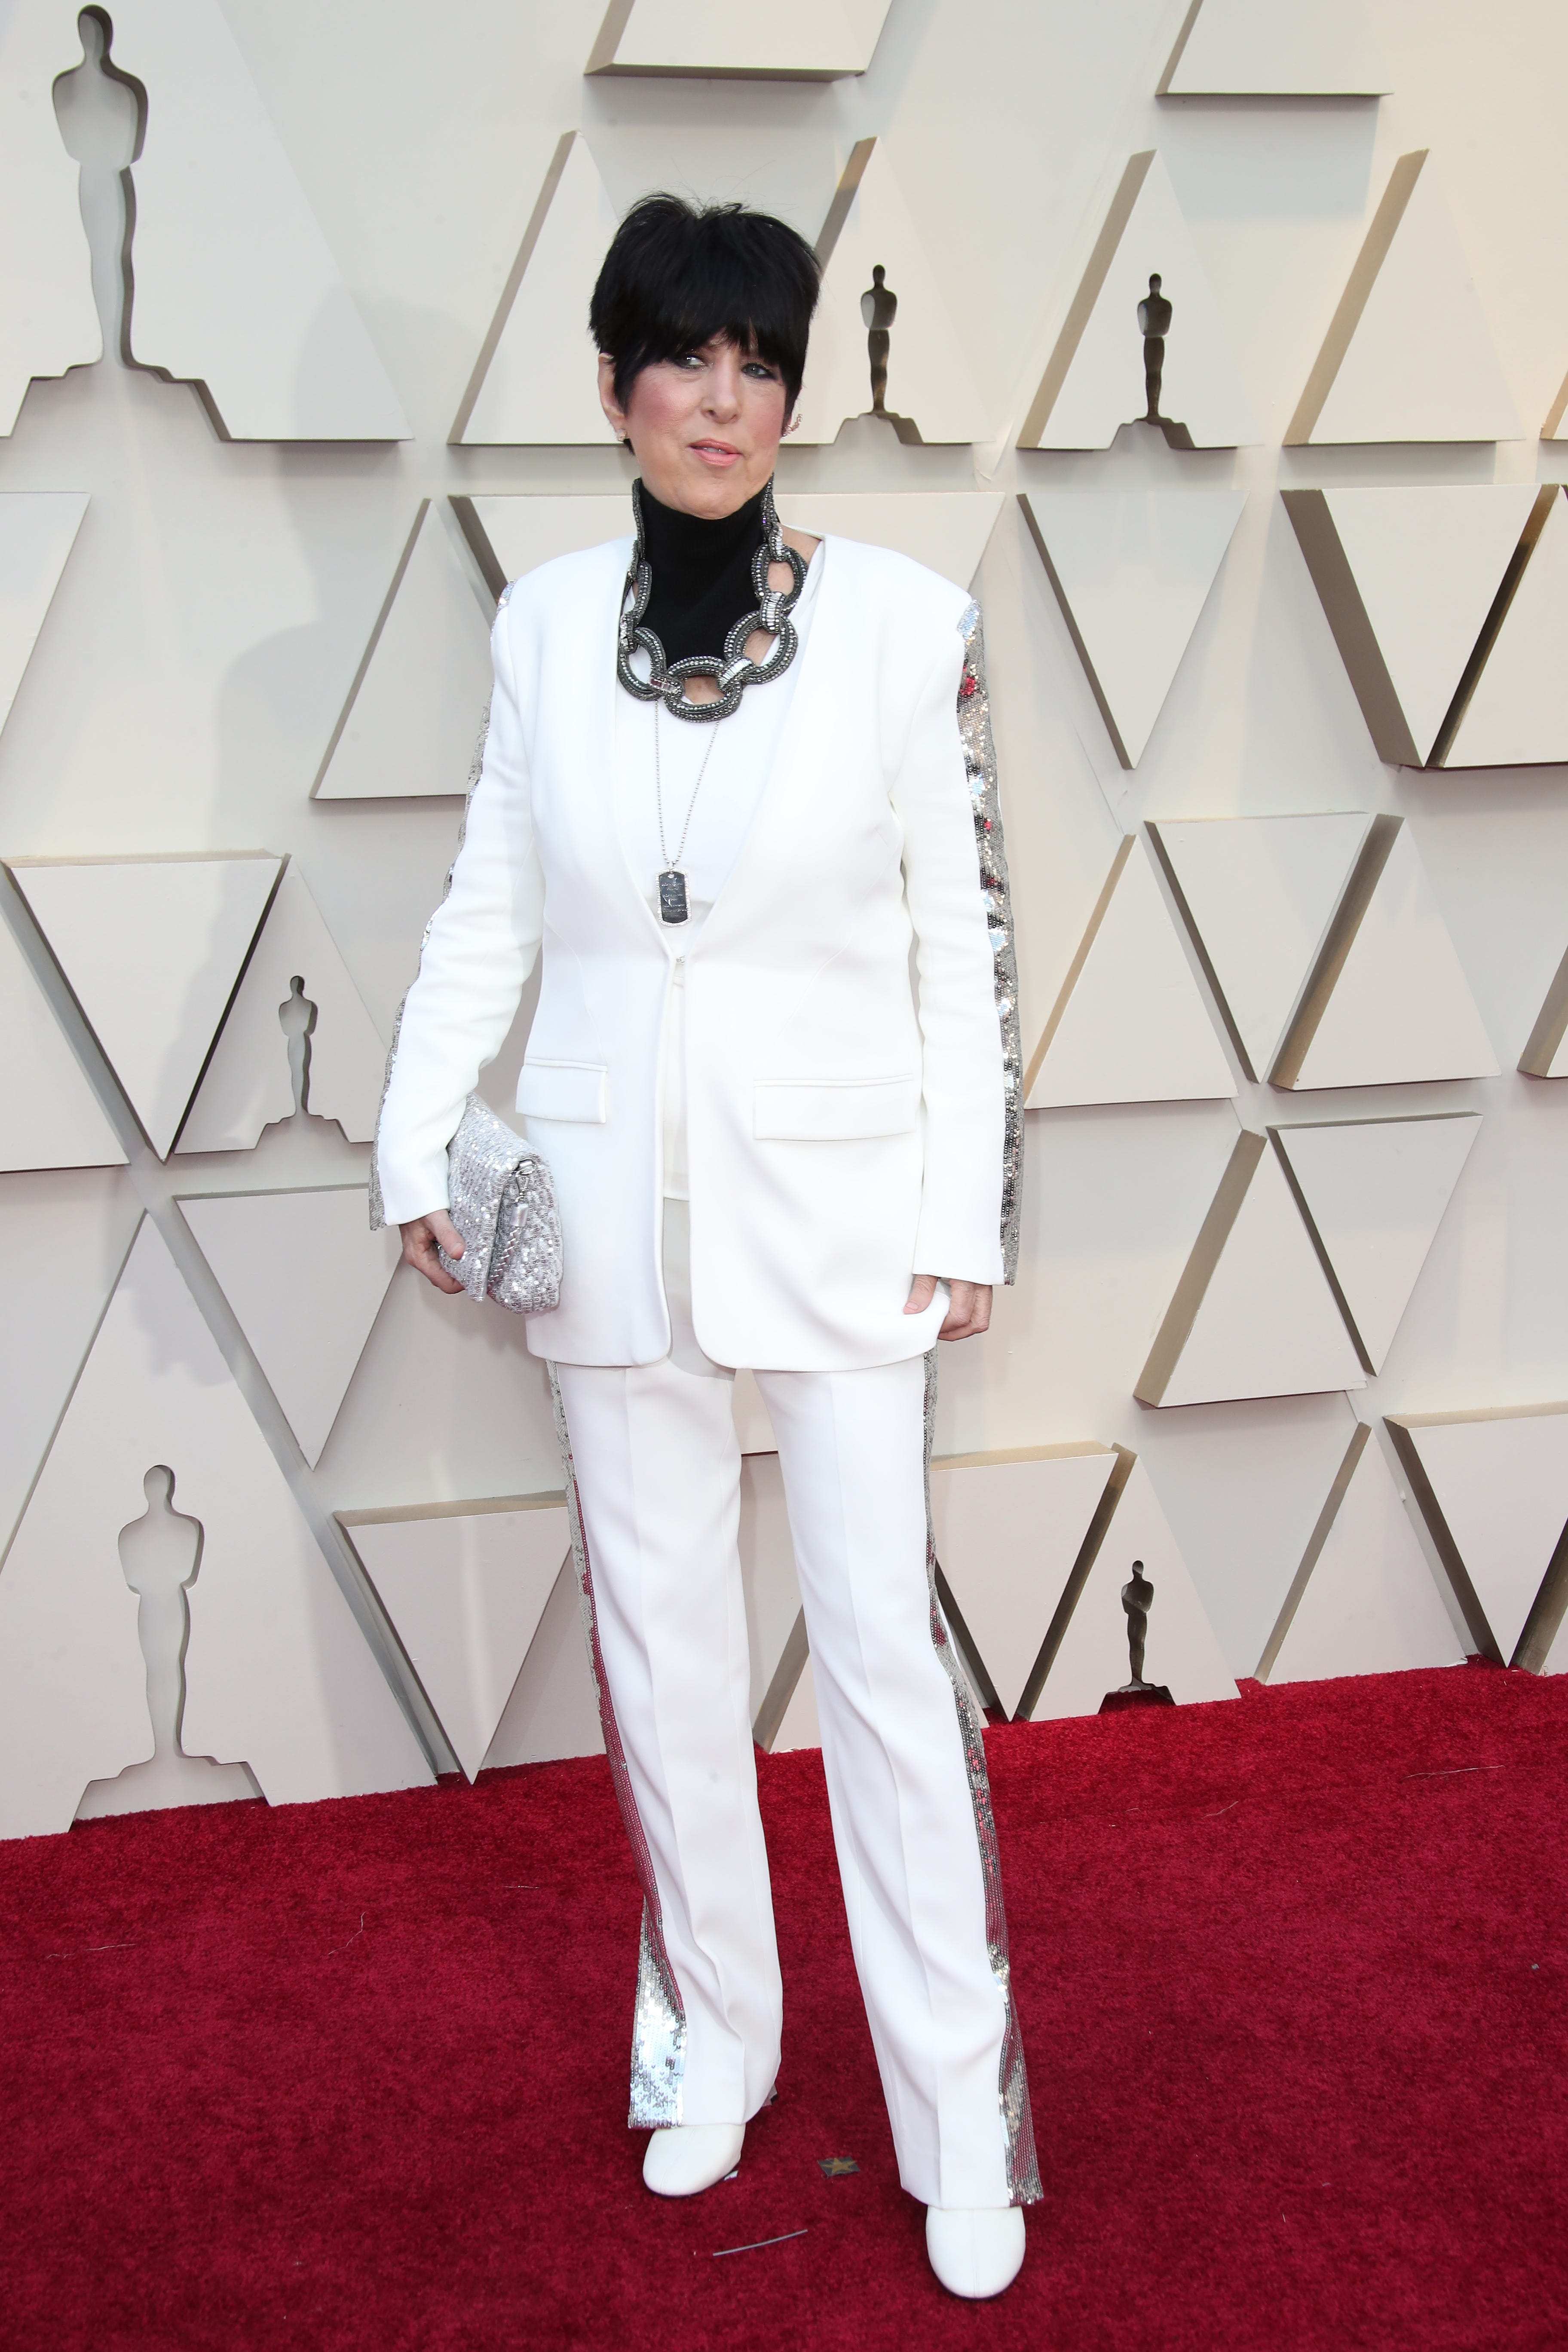 February 24, 2019; Los Angeles, CA, USA; Diane Warren arrives at the 91st Academy Awards at the Dolby Theatre. Mandatory Credit: Dan MacMedan-USA TODAY NETWORK (Via OlyDrop)